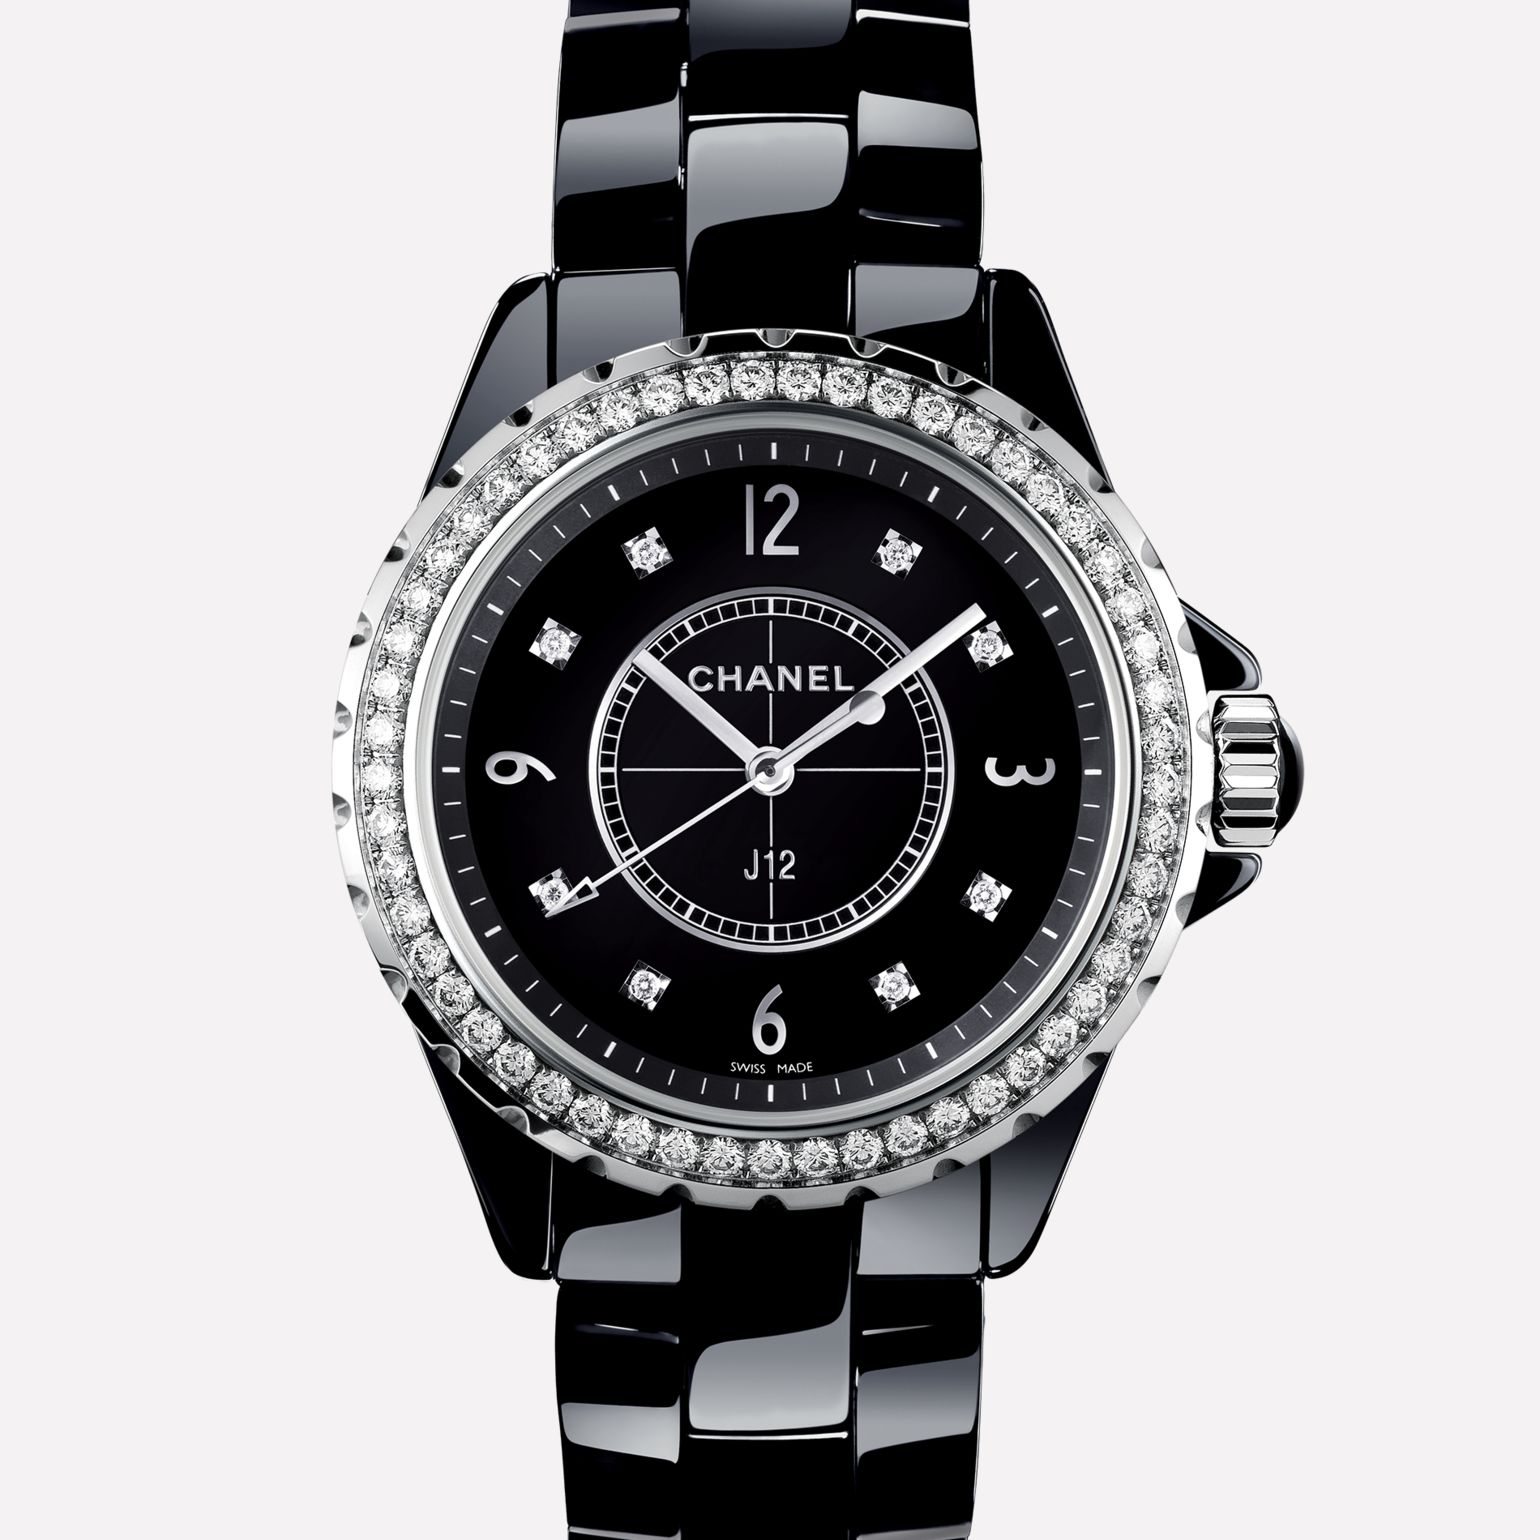 J12 Watch Black ceramic and steel, brilliant-cut diamond bezel and indicators